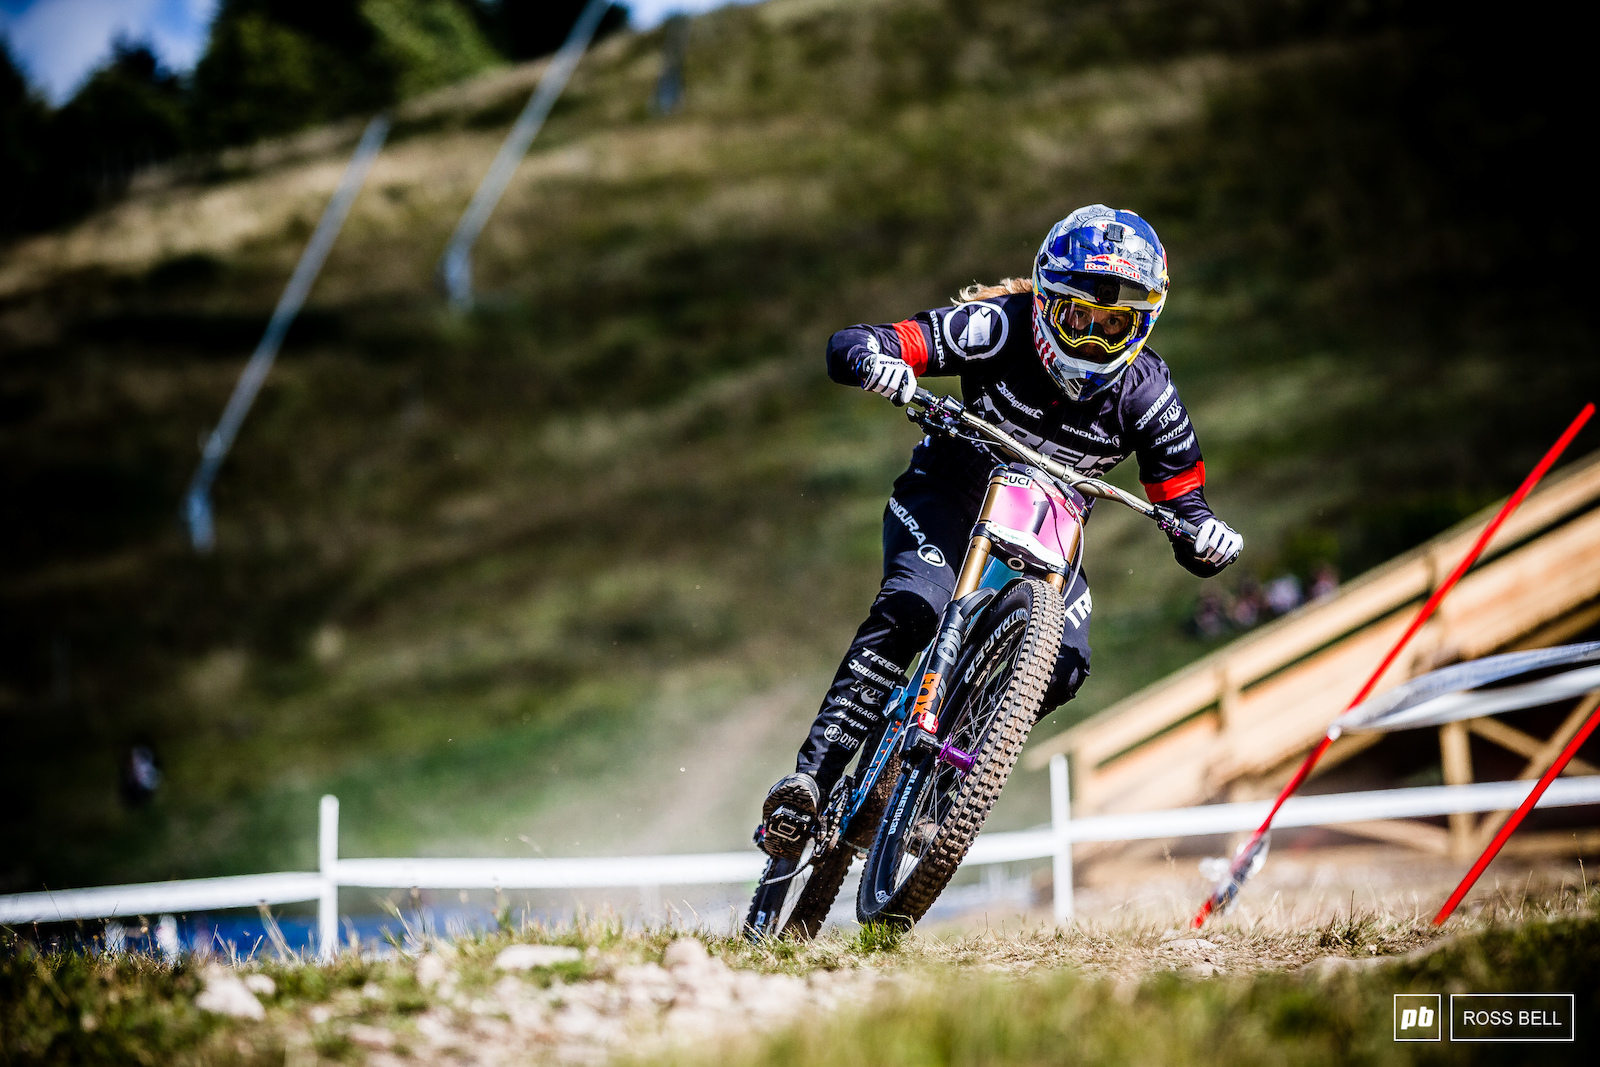 Rachel Atherton pushing on through the final fast grass corners during her timed training run which would place her fastest.